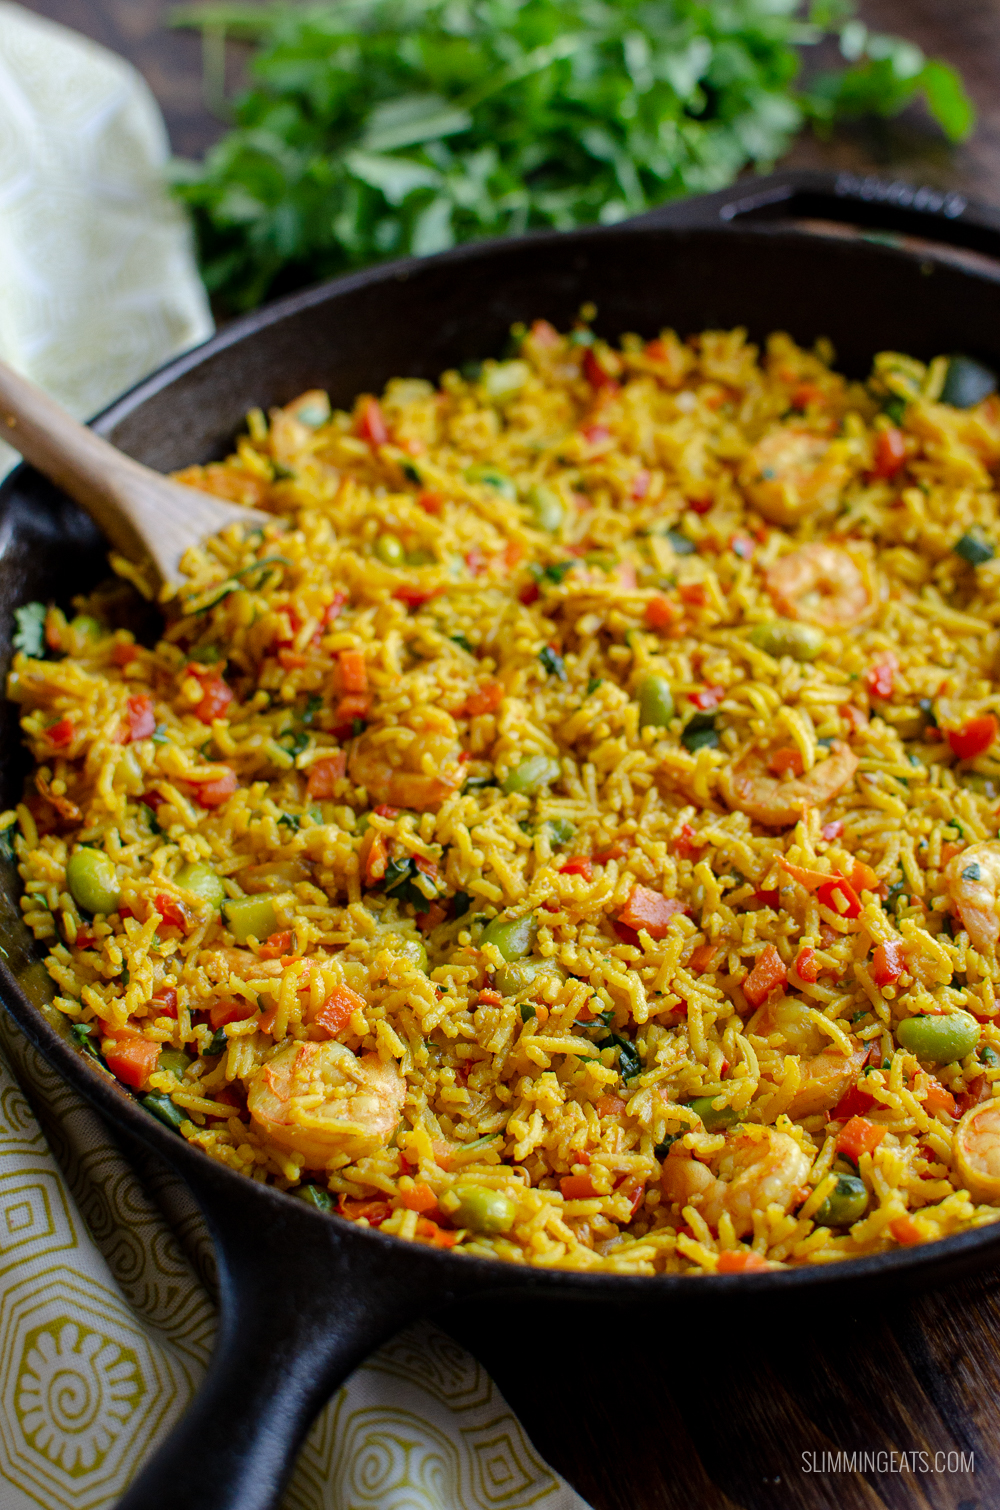 prawn and vegetable pilaf in a cast iron skillet with wooden spoon